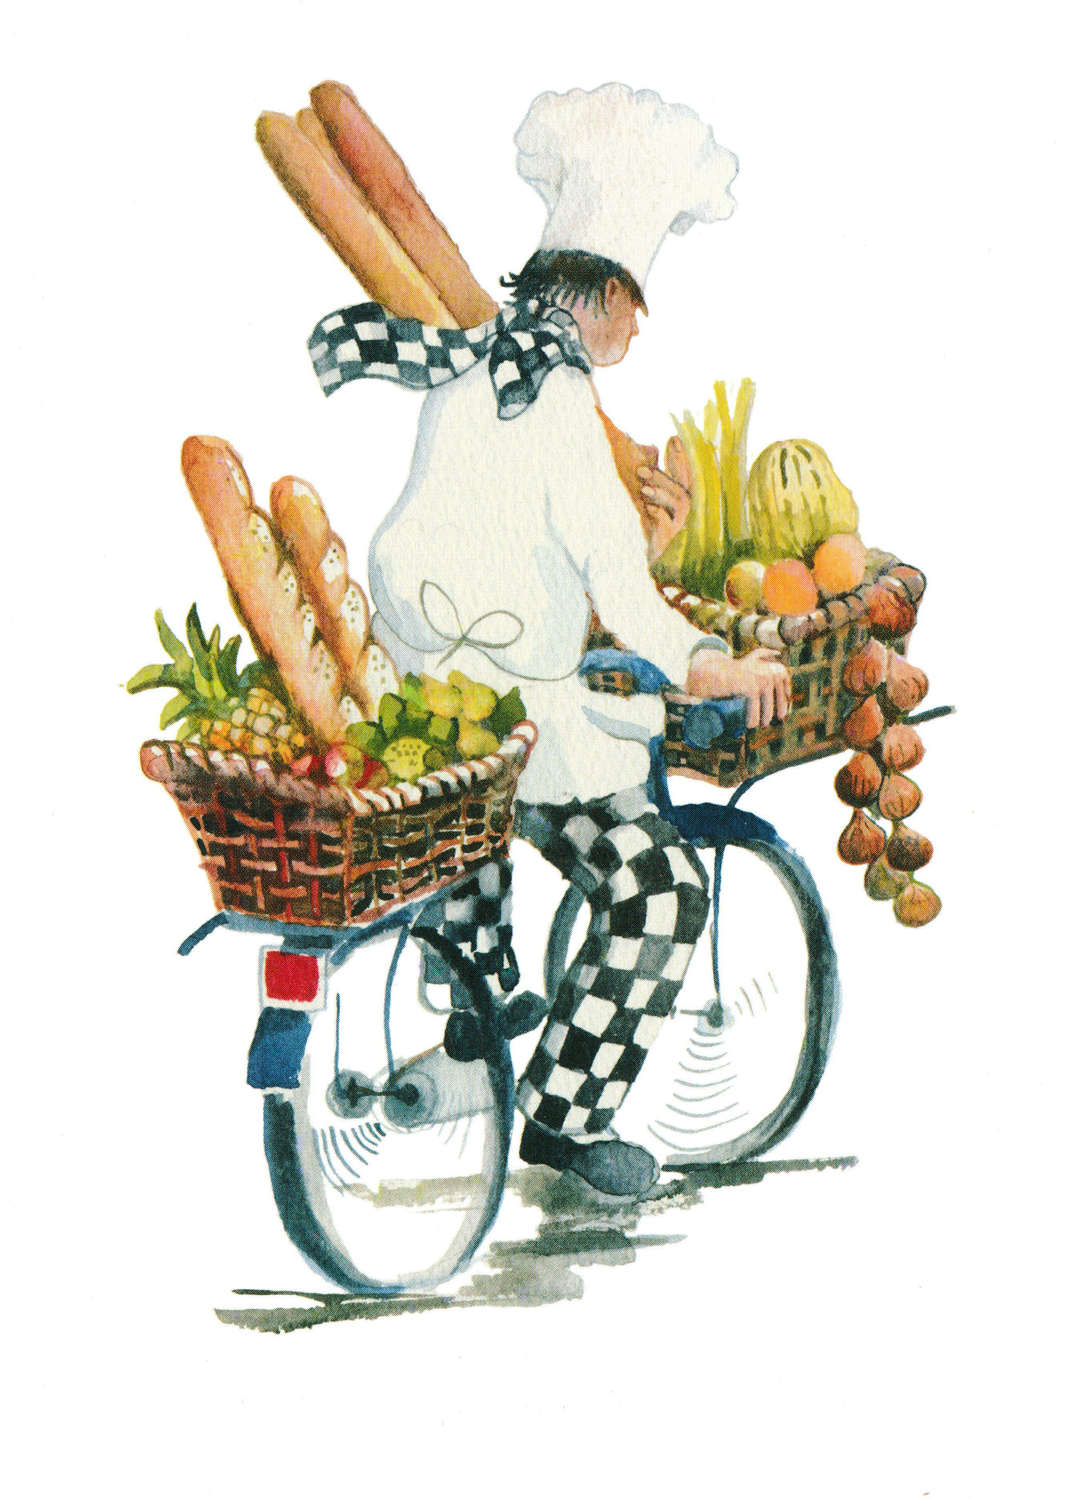 Chef on a bicycle